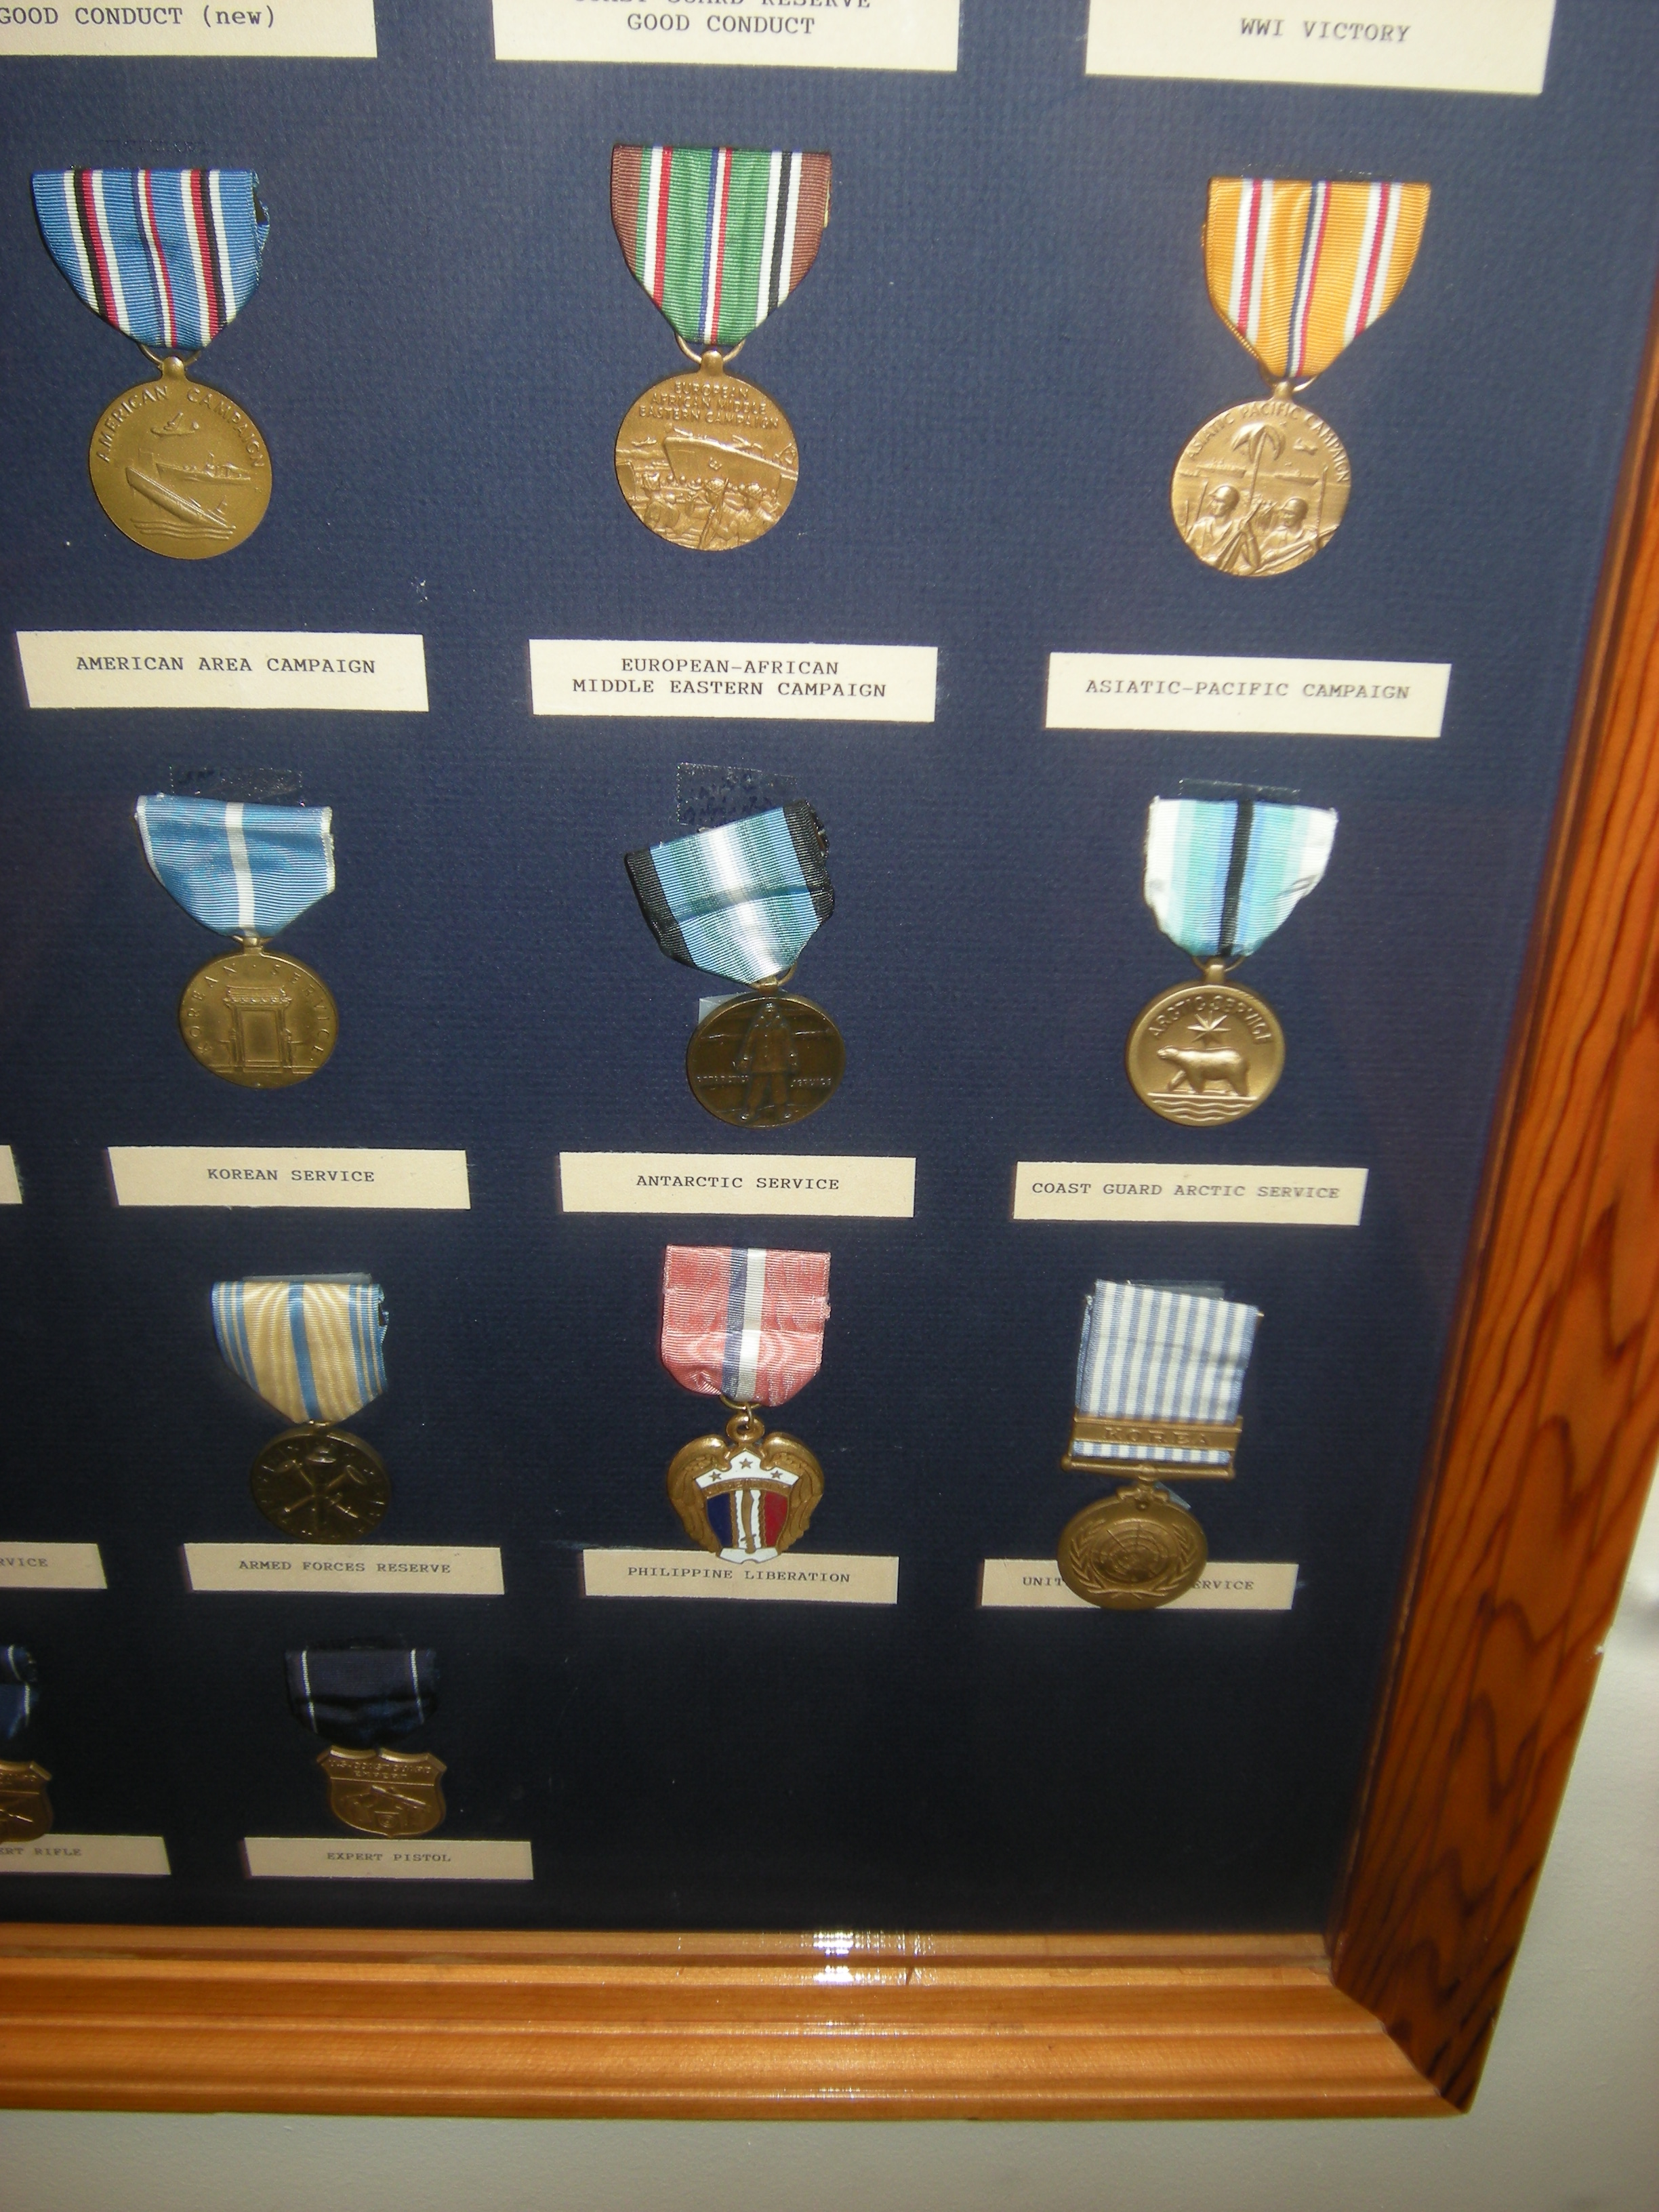 File:USCG medals 05 jpg - Wikimedia Commons